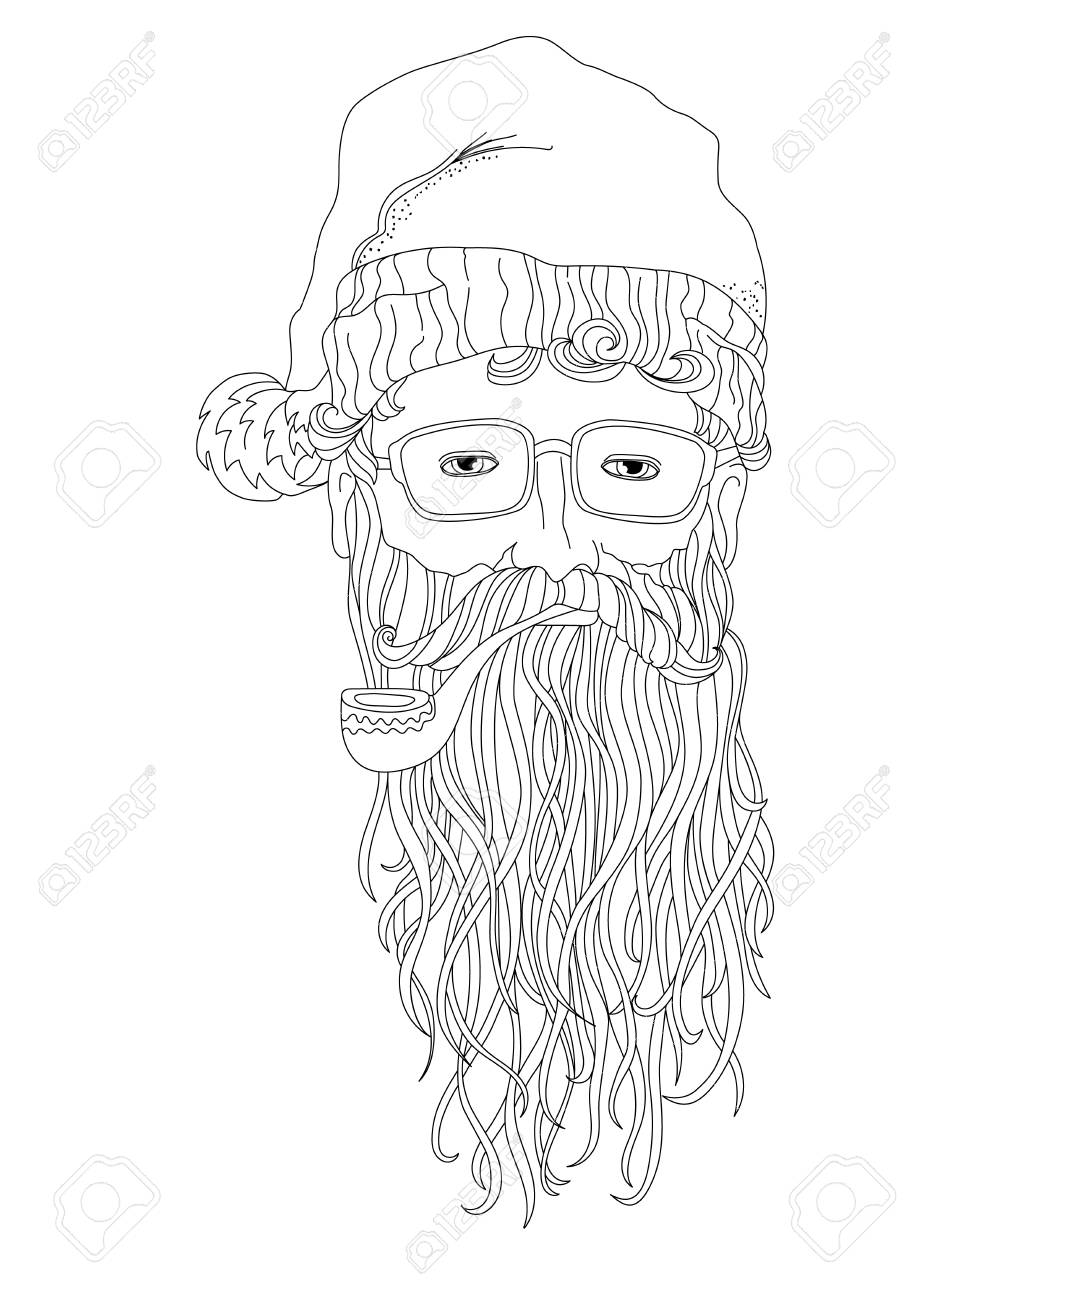 santa hipster coloring page for children and adults head of santa claus with a